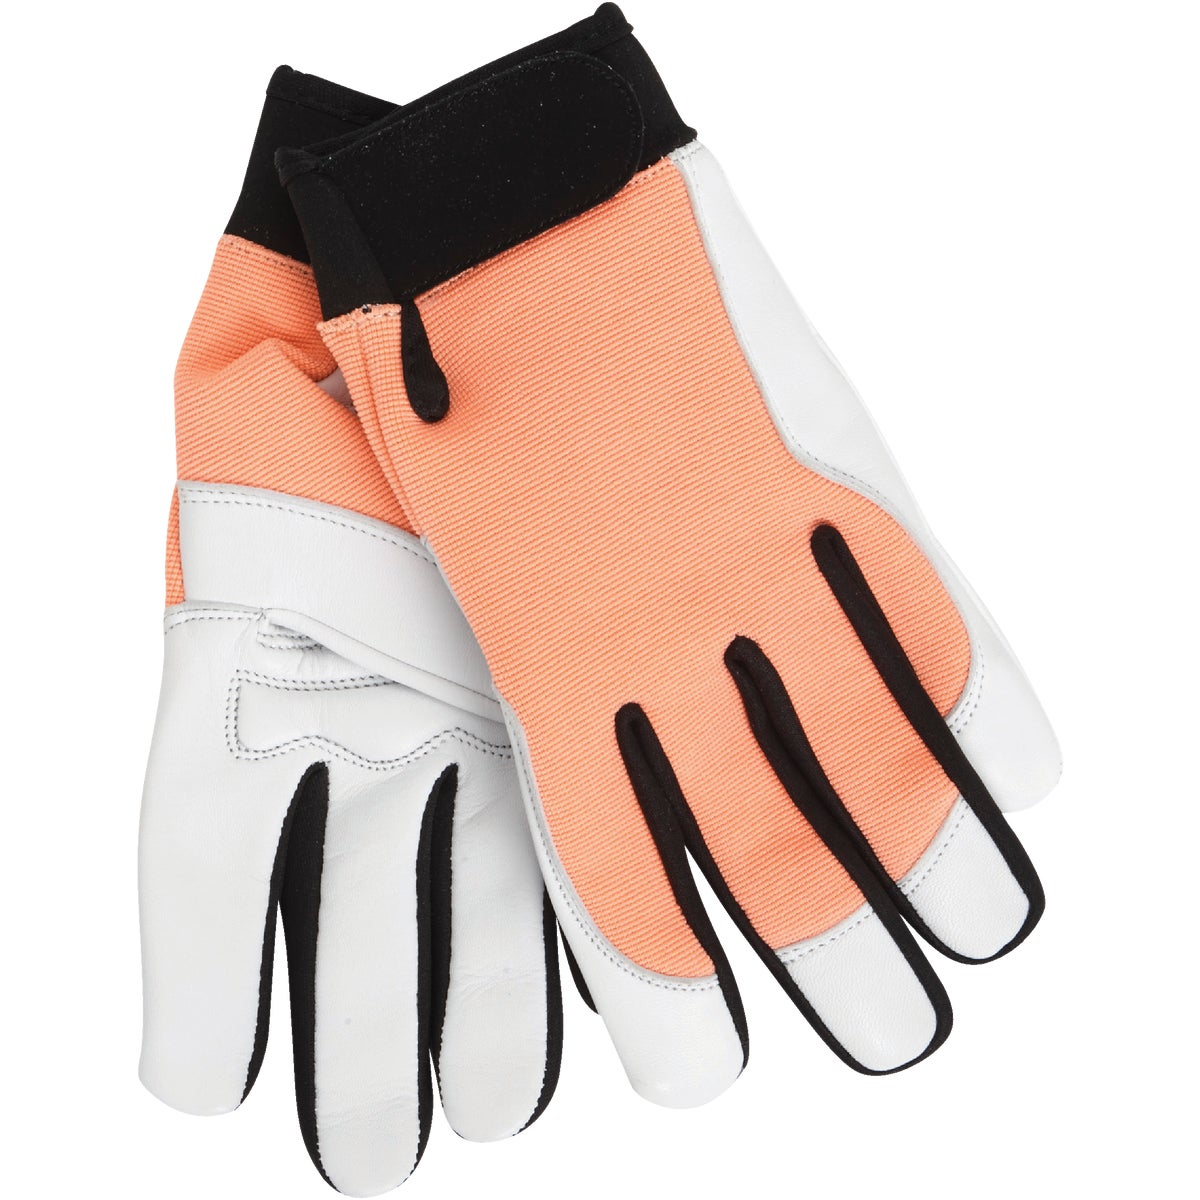 MED WOMENS SUEDE GLOVE - 1049M by Wells Lamont